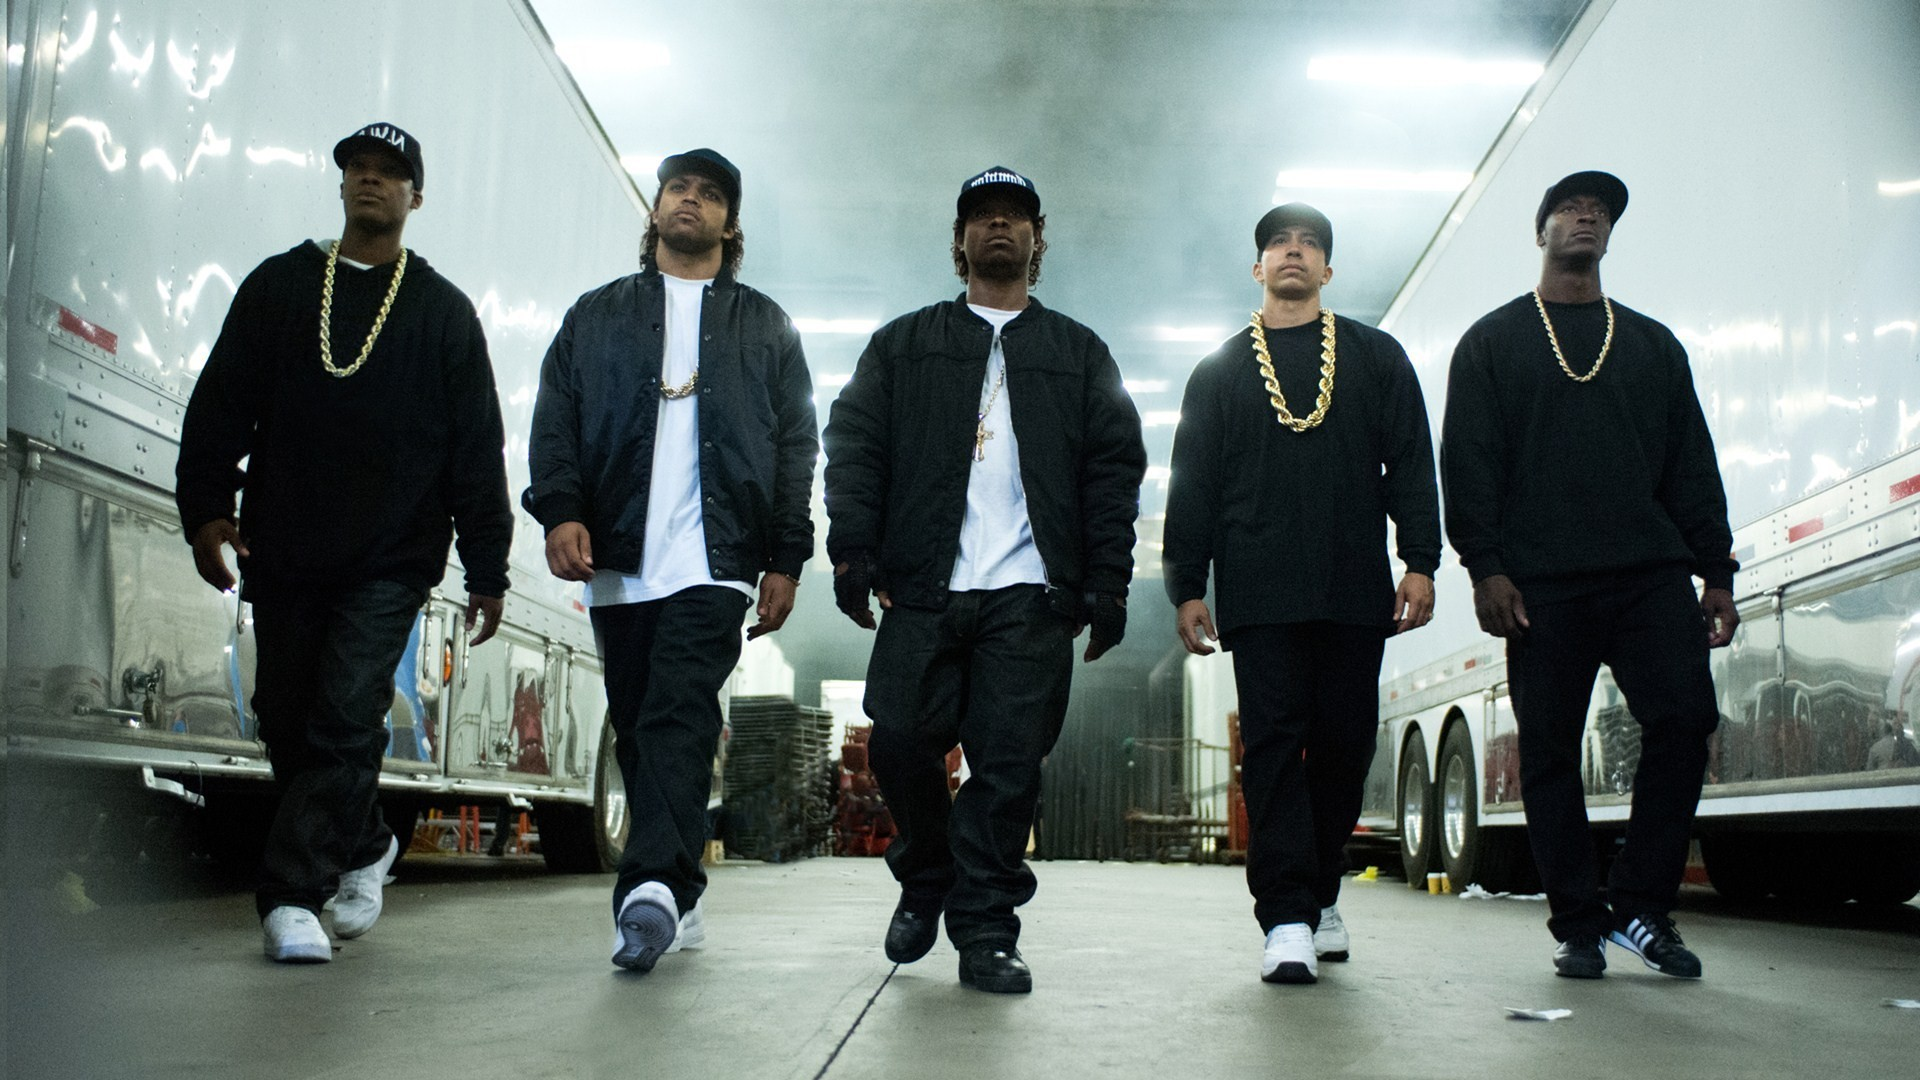 Res: 1920x1080, The N.W.A. biopic devolves into trash talk and diss tracks.